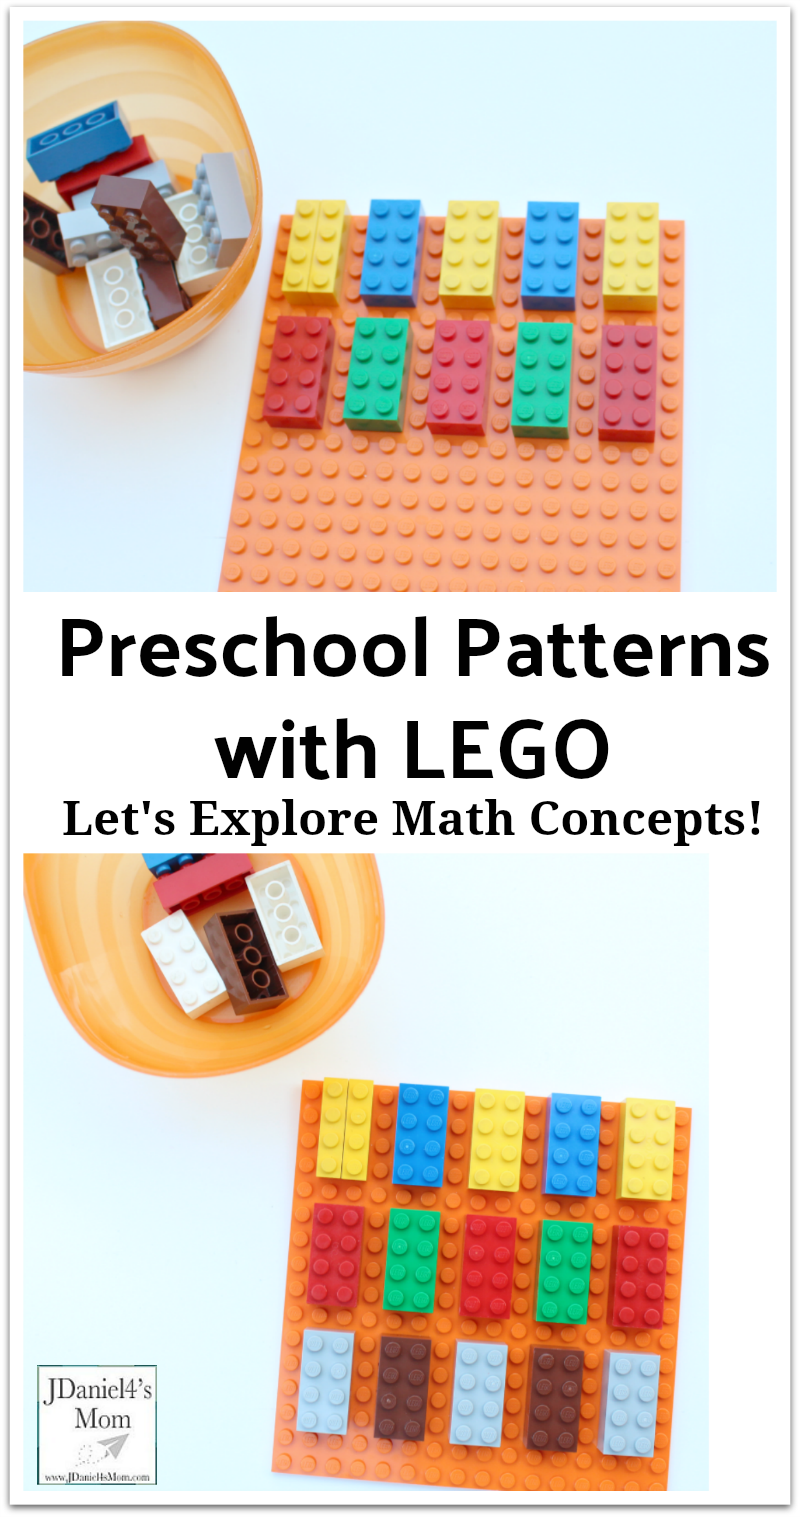 Let's Explore Math Concepts!  Preschool Patterns with LEGO : Children at home or students at school can explore how to build simple patterns with brick and a base plate.